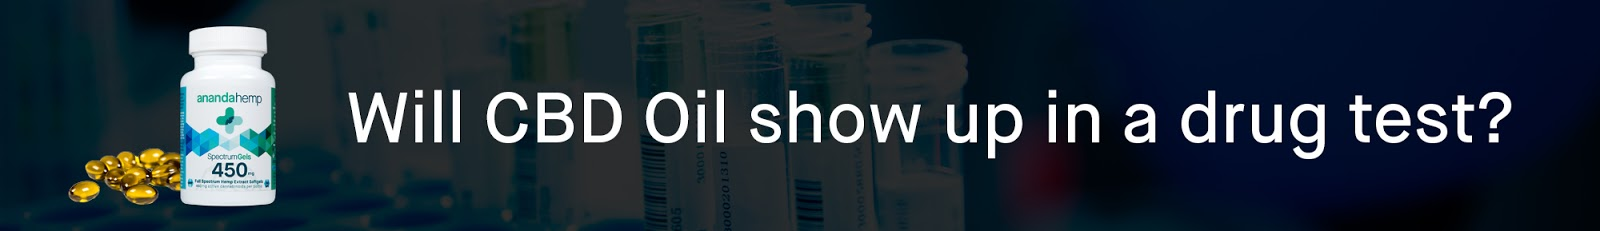 Does cbd oil show up on a drug test how to use ecig for How long does fish oil stay in your system